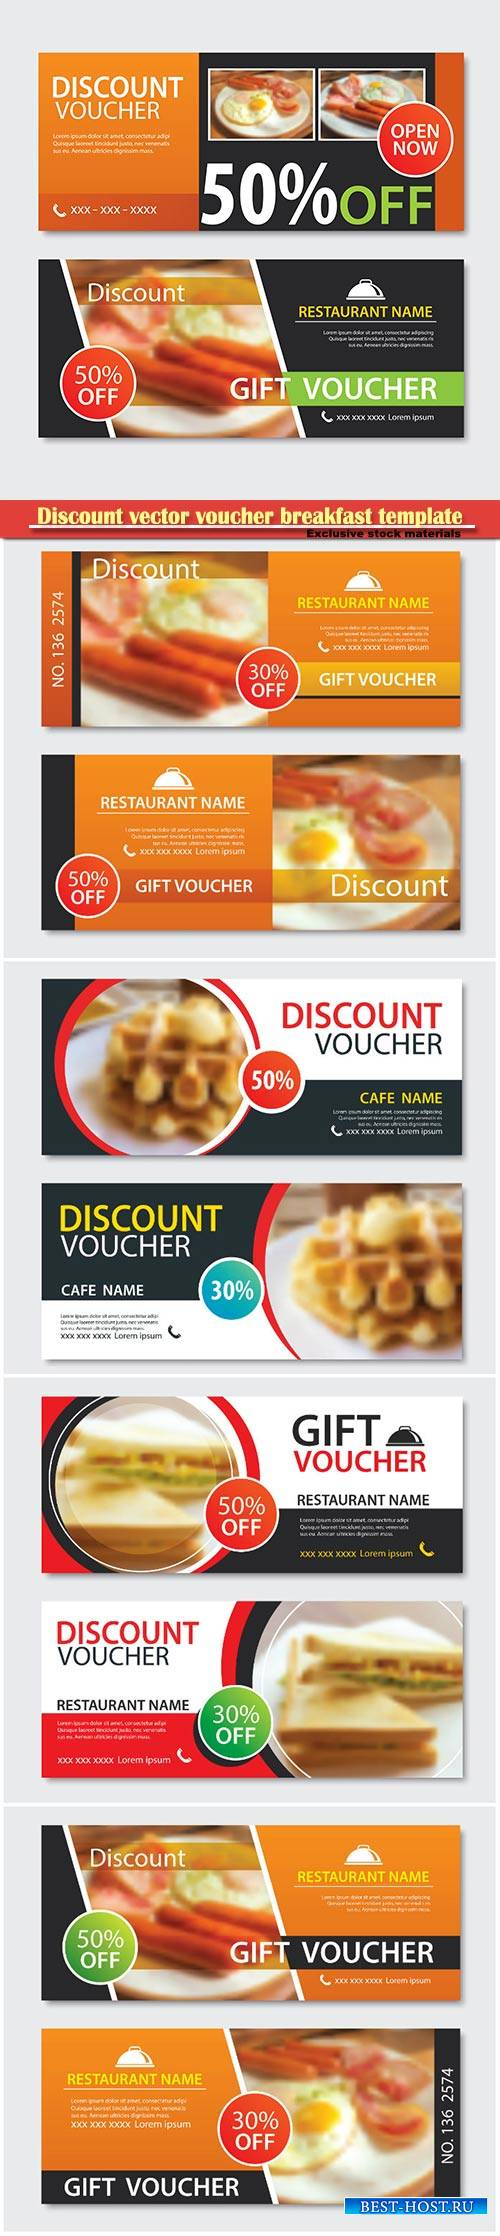 Discount vector voucher breakfast template design